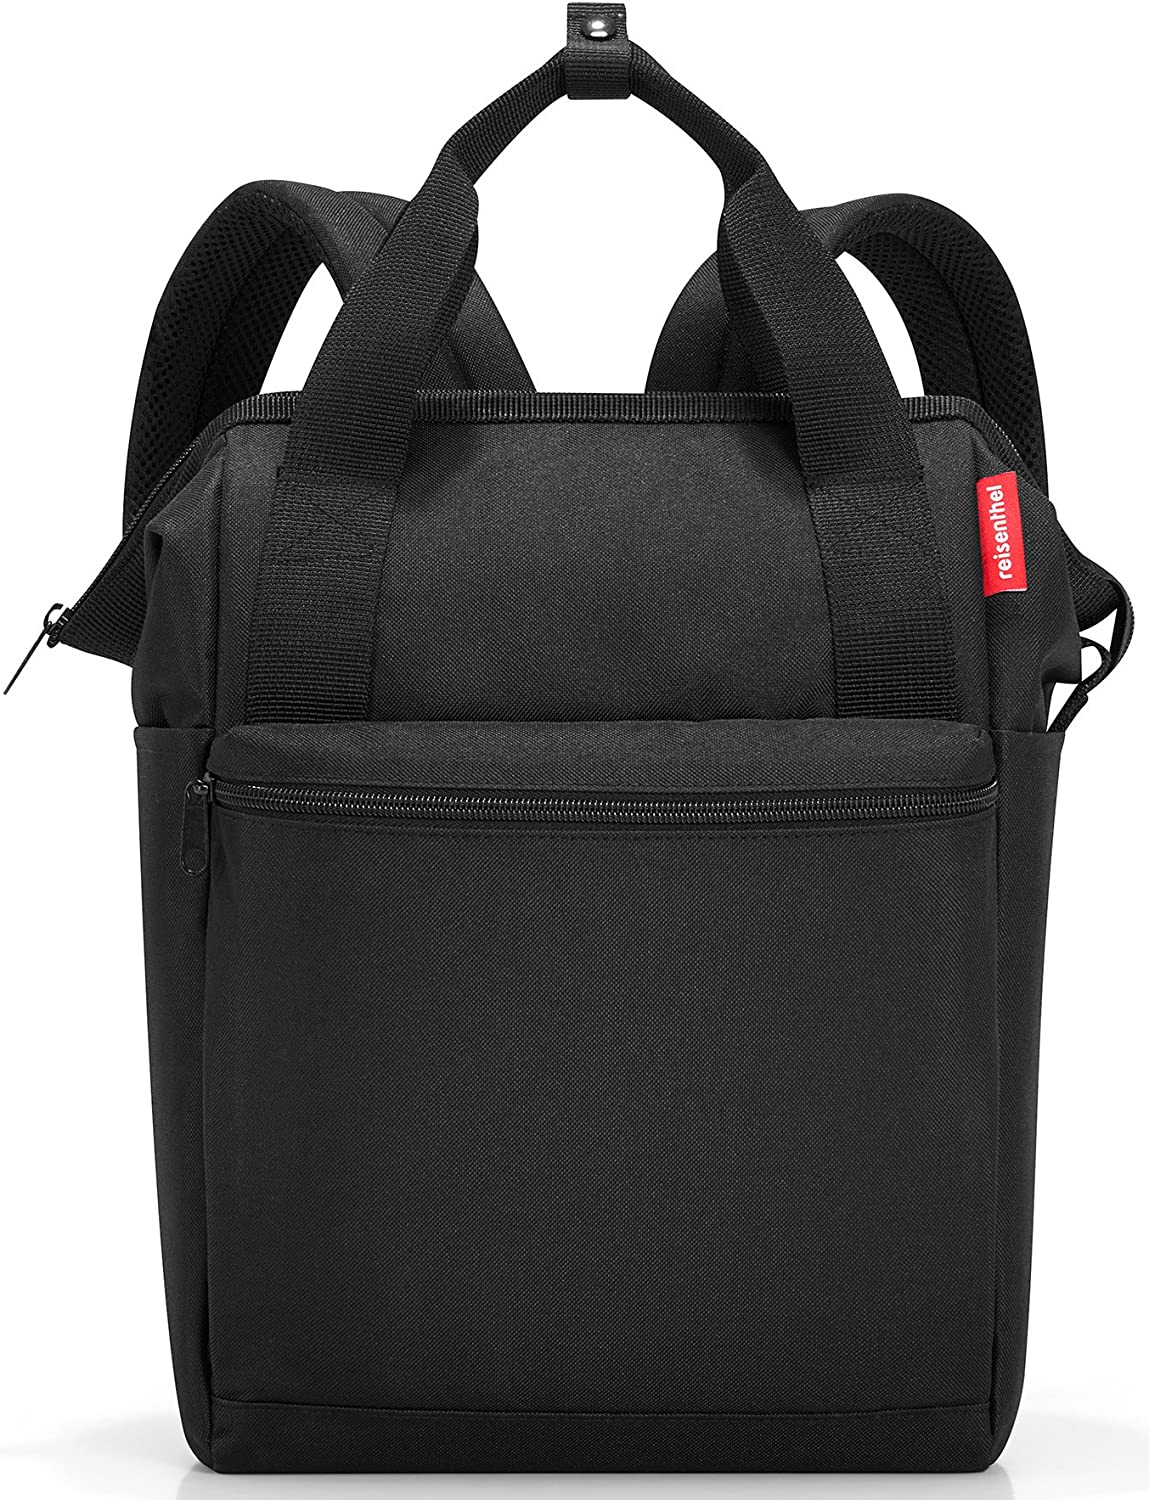 reisenthel Allrounder R Backpack, Secure Zipper, Two-Way Carry Handles